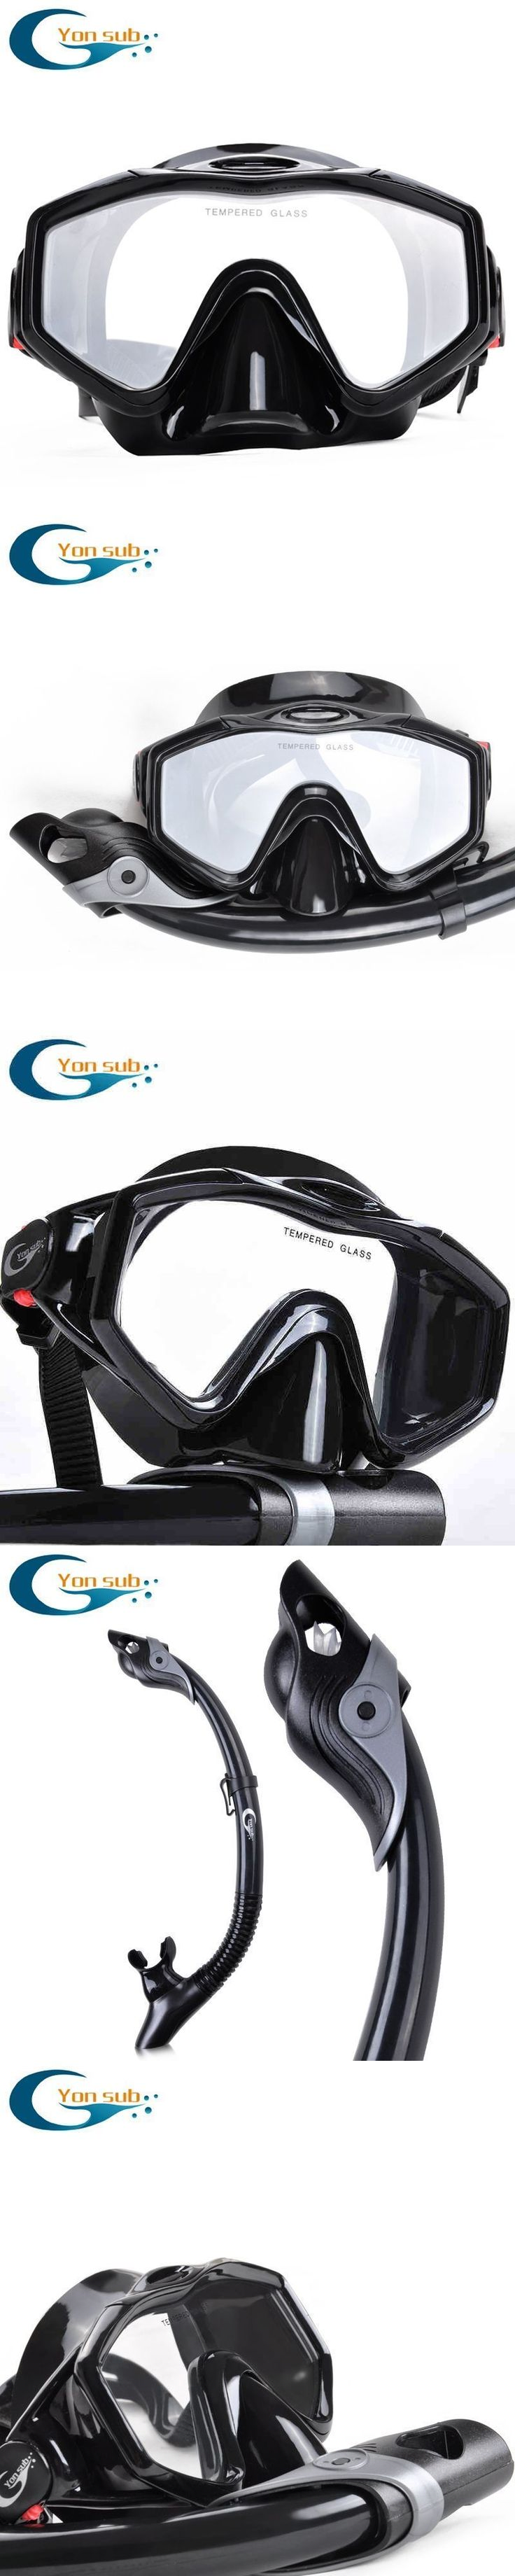 silicone tempered glass professional Scuba  Diving Equipment Diving Mask + Dry Snorkel Set black #scubadivingequipmentmasks